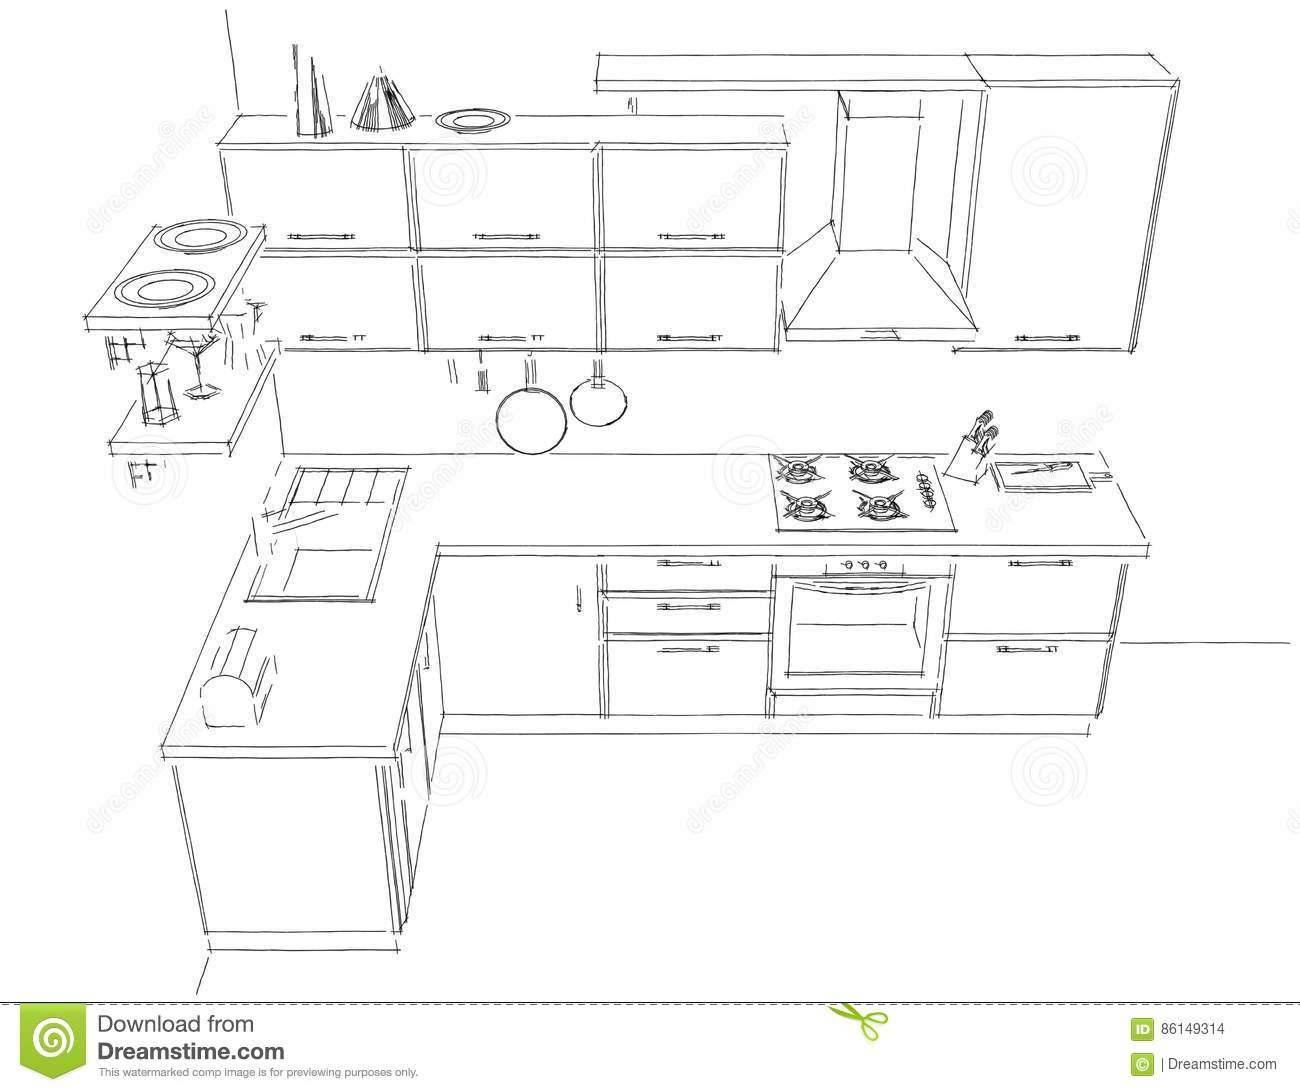 Dream Kitchen Design Drawing: Sketch Abstract Contour Drawing Of 3d Modern Corner